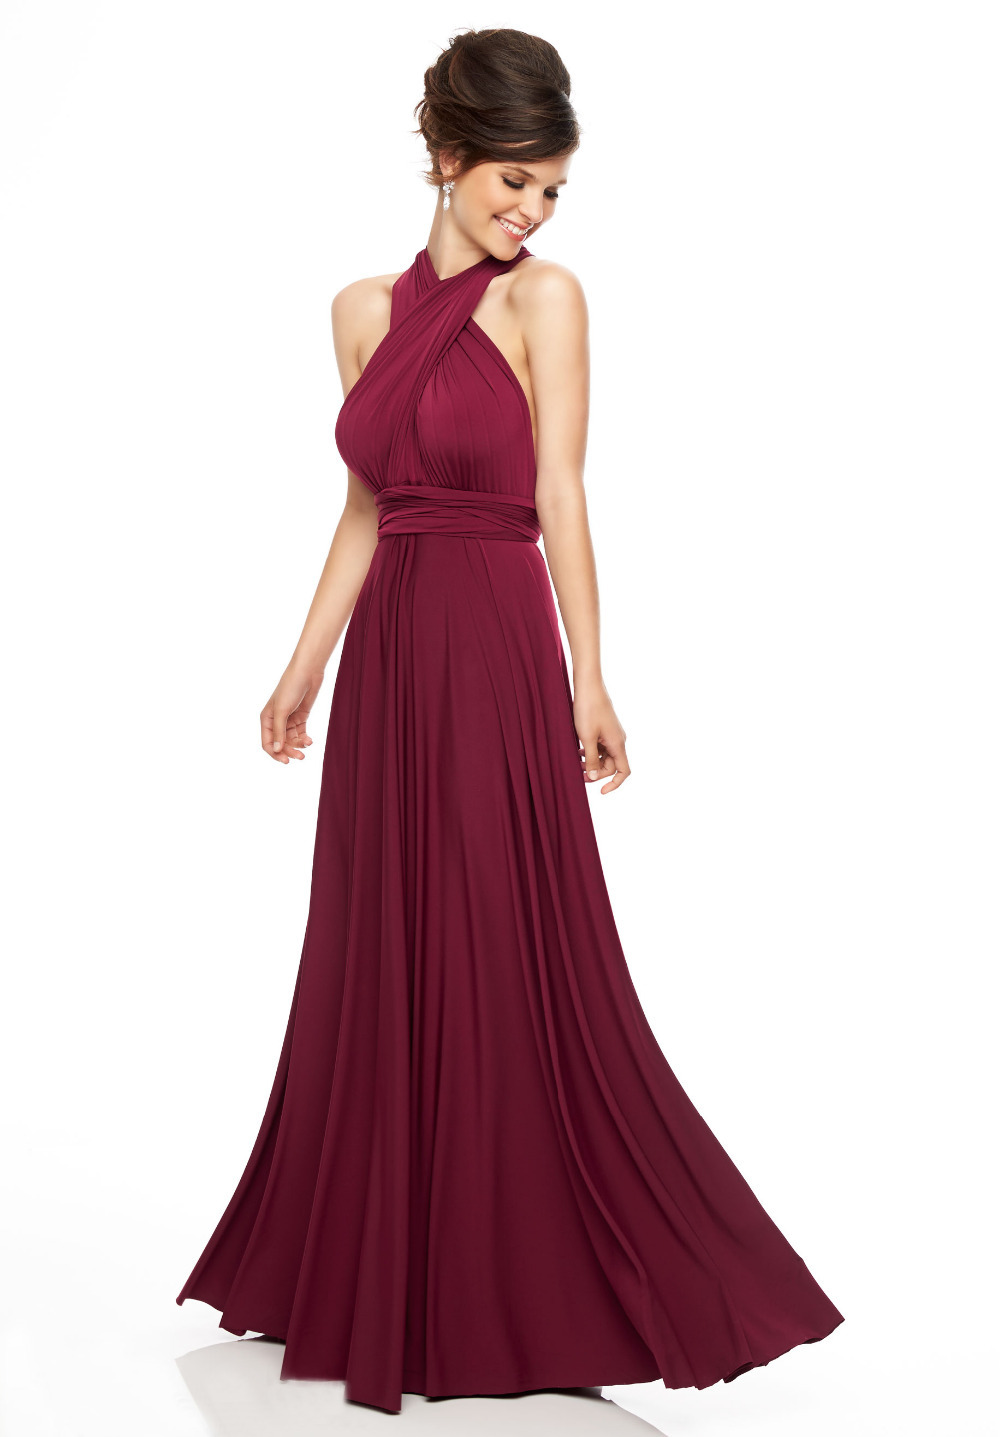 Get Quotations · Sexy red wine long chiffon bridesmaid dresses 2015 halter  pleated plus size wedding party dress gaun 1f53ca18e6